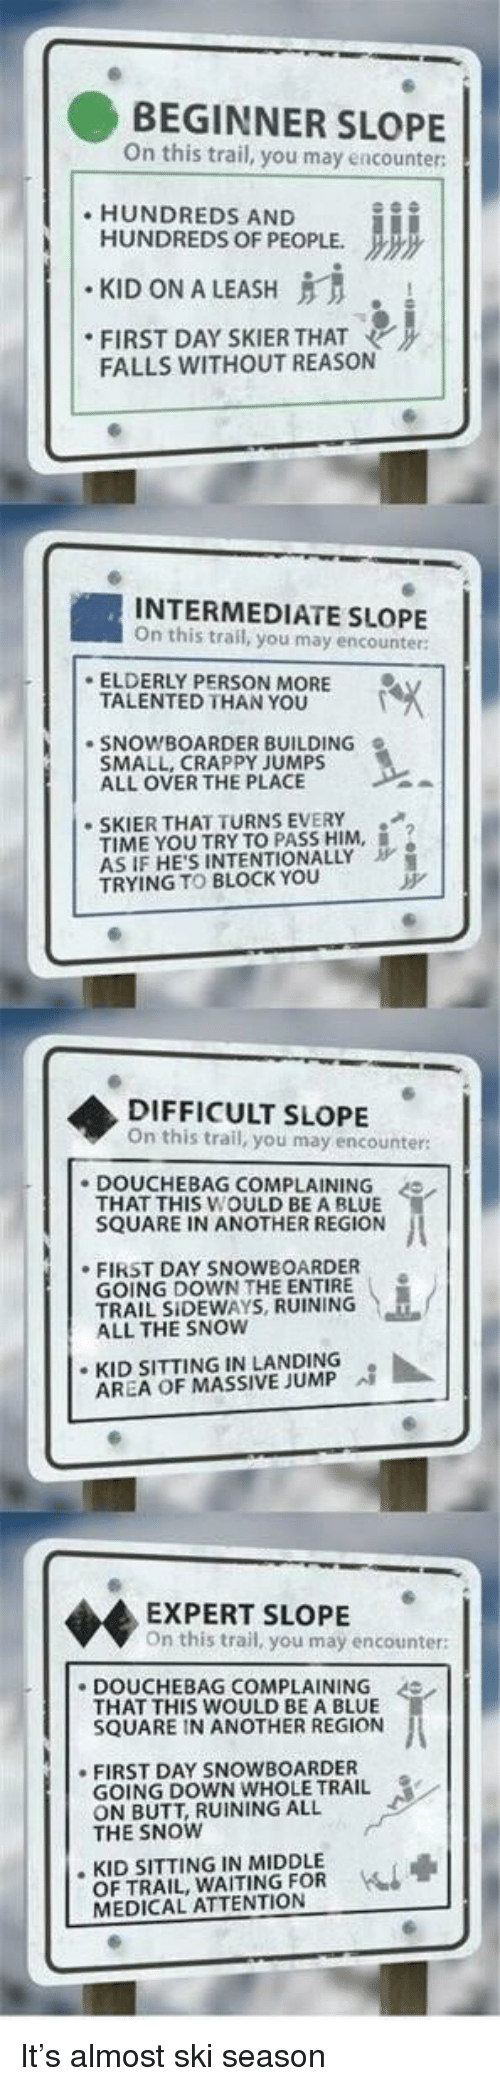 """Butt, Douchebag, and Blue: BEGINNER SLOPE  n this trail, you may encounter  HUNDREDS AND  HUNDREDS OF PEOPLE.  """" KID ON A LEASH  FIRST DAY SKIERTHAT  FALLS WITHOUT REASON  INTERMEDIATE SLOPE  On this trail, you may encounter:  ELDERLY PERSON MORE  TALENTED THAN YOU  SNOWBOARDER BUILDING  SMALL, CRAPPY JUMPS  ALL OVER THE PLACE  SKIER THAT TURNS EVERY  TIME YOU TRYTO PASS HIM, İ.  AS IF HE'S INTENTIONALLY  TRYING TO BLOCK YOu  DIFFICULT SLOPE  On this trail, you may encounter  DOUCHEBAG COMPLAINING  THAT THIS WOULD BE A BLUE  SQUARE IN ANOTHER REGION  .FIRST DAY SNOWBOARDER  GOING DOWN THE ENTIRE .  TRAIL SIDEWAYS, RUINING  ALL THE SNOW  ·KID SITTING IN LANDING  AREA OF MASSIVE JUMP  EXPERT SLOPE  On this trail, you may encounter:  DOUCHEBAG COMPLAINING  THAT THIS WOULD BE A BLUE  SQUARE IN ANOTHER REGION  FIRST DAY SNOWBOARDER  GOING DOWN WHOLE TRAIL  ON BUTT, RUINING ALL  THE SNOW  . KID SITTING IN MIDDLE  OF TRAIL, WAITING FOR  MEDICAL ATTENTION It's almost ski season"""